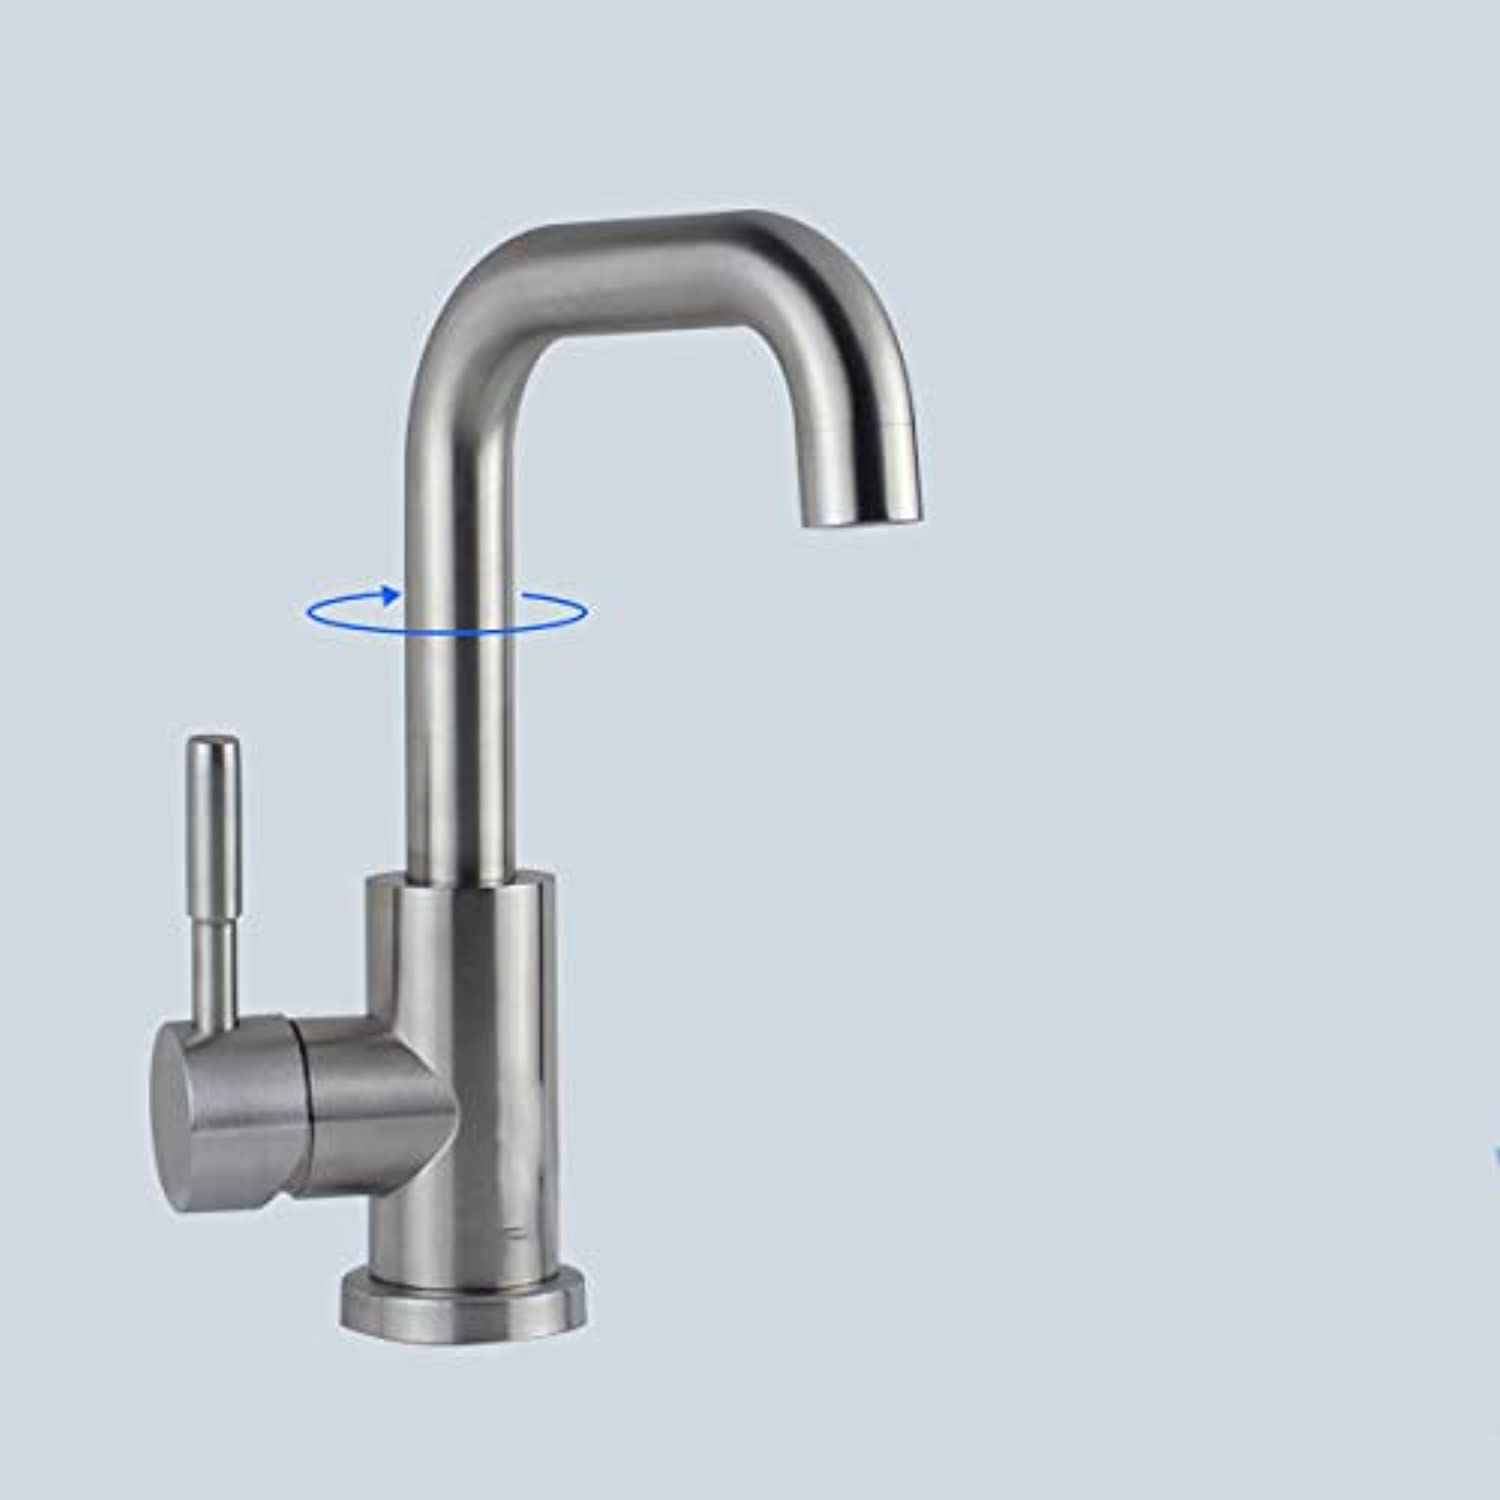 LHbox Basin Mixer Tap Bathroom Sink Faucet Stainless steel basin mixer bathroom hot and cold single hole to redate the,B,)